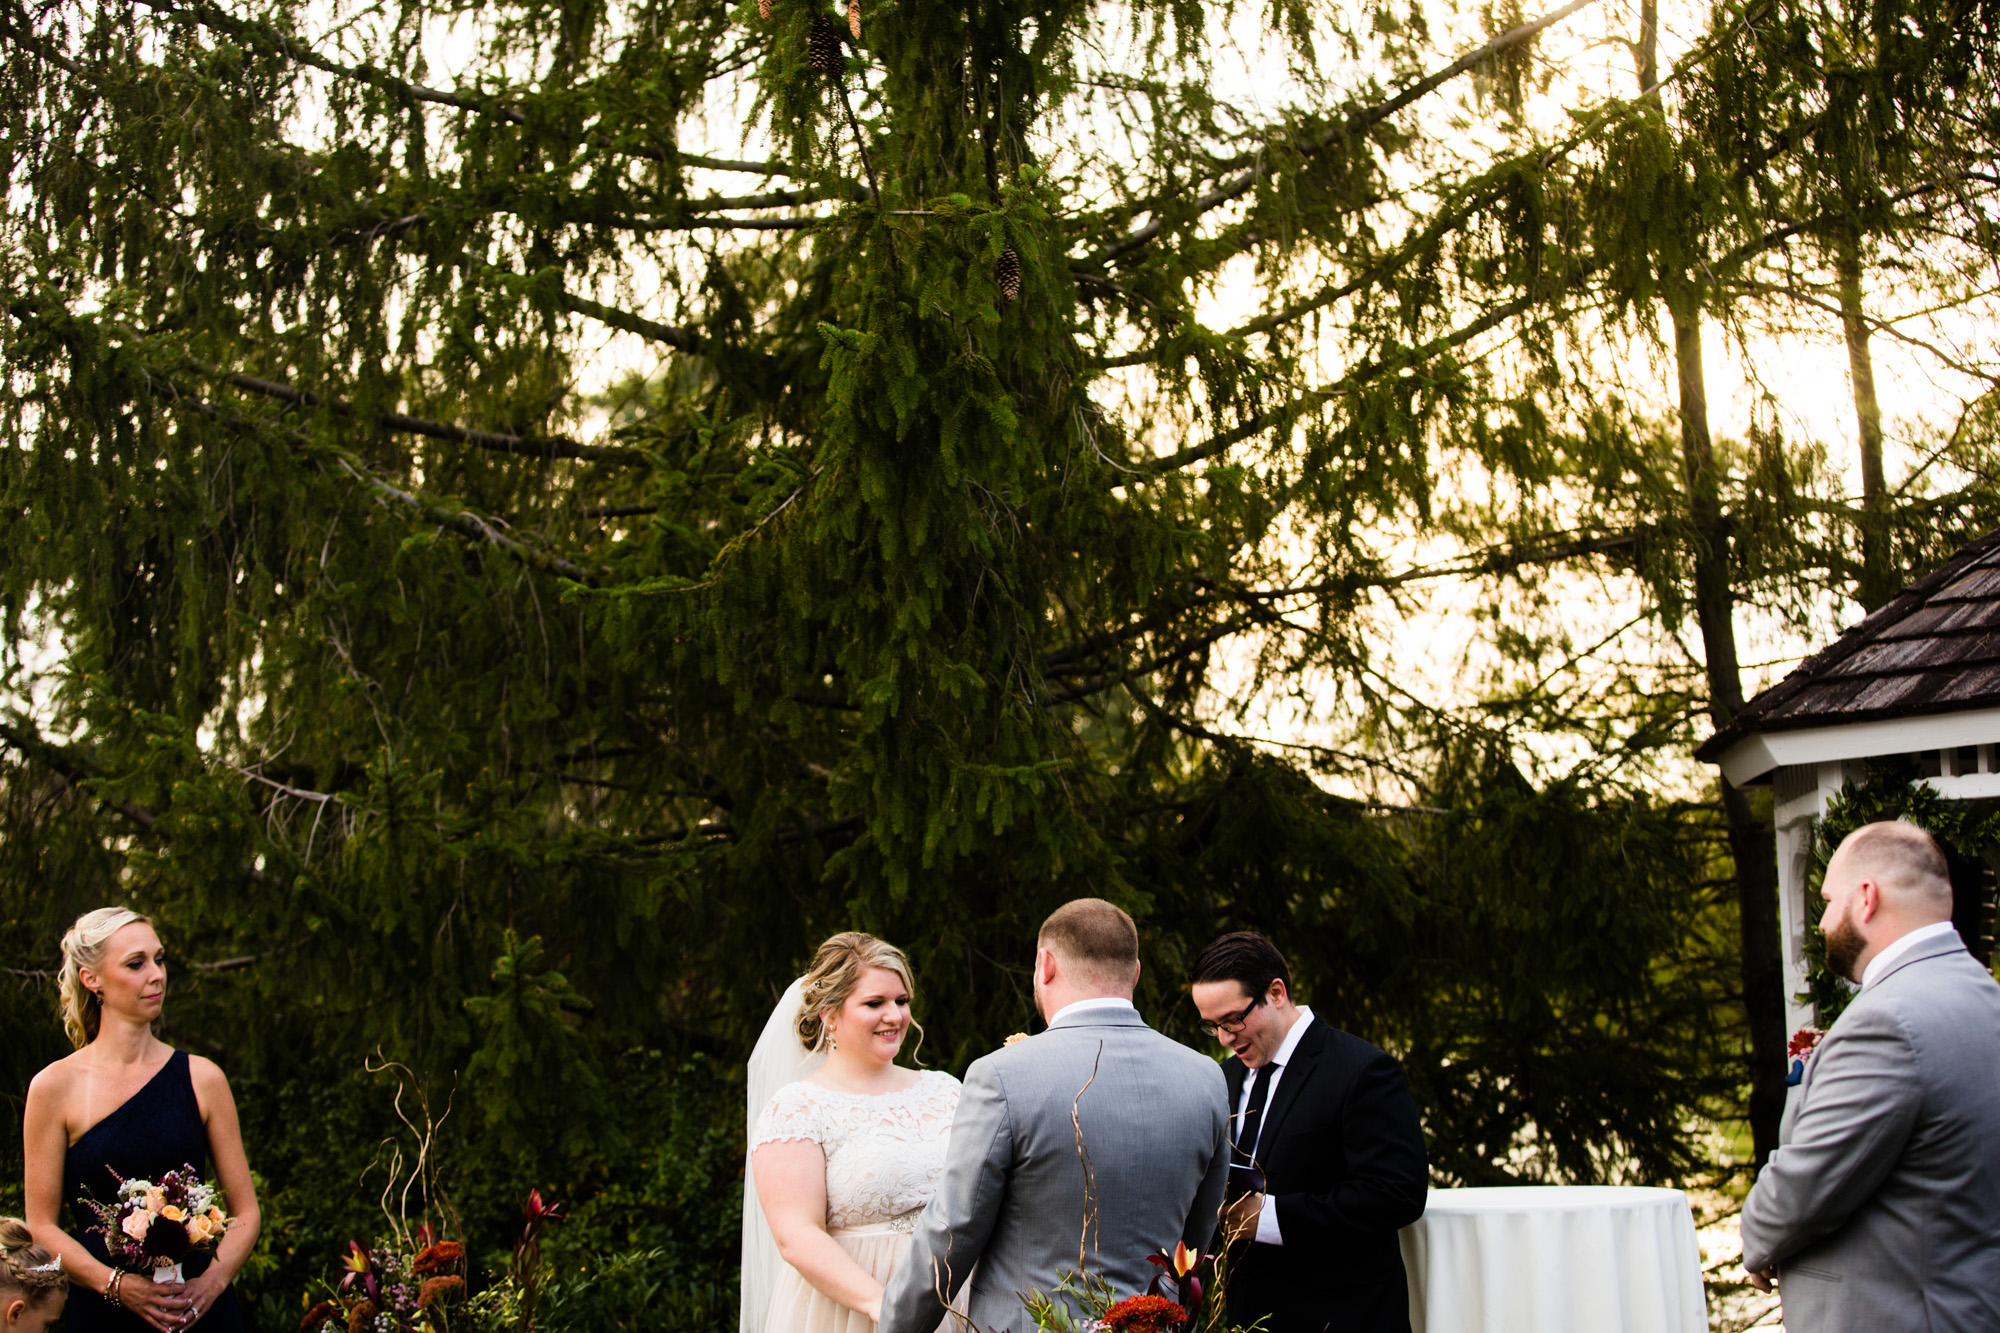 LOVESTRUCK PICTURES NORMANDY FARMS WEDDING - 056.jpg